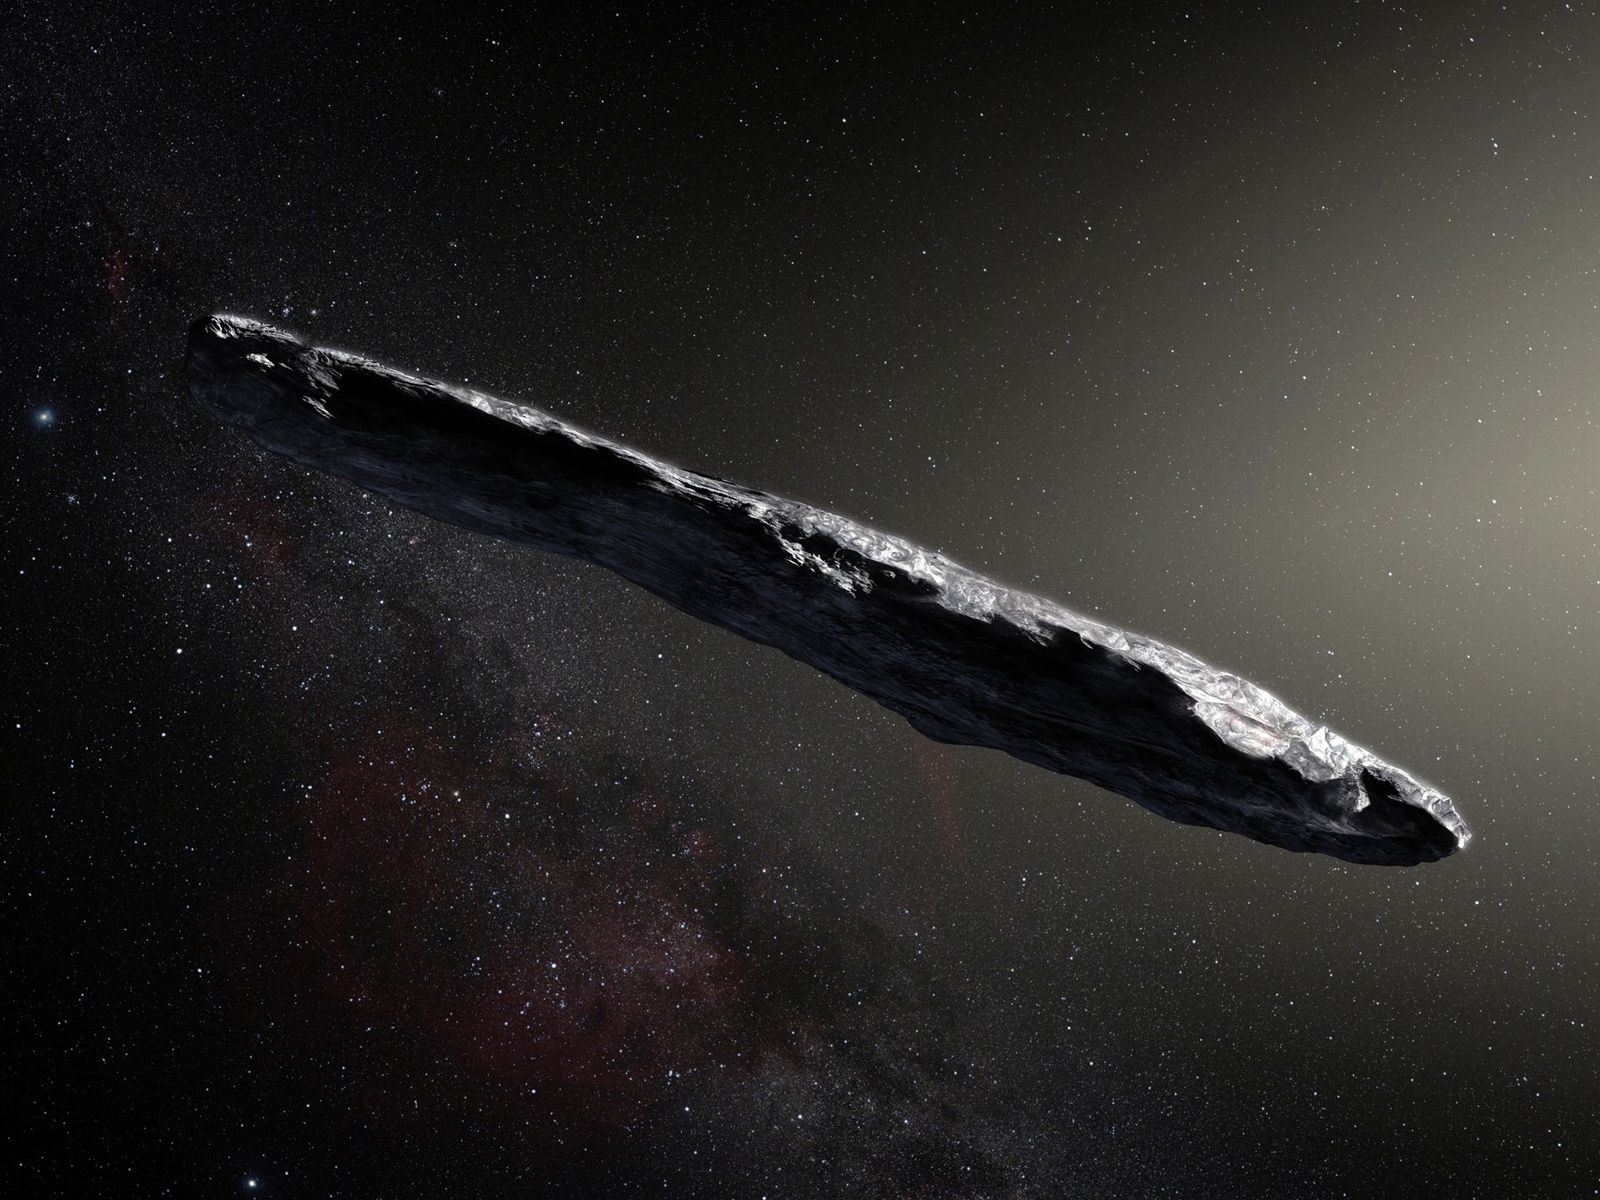 This artist's impression shows the first interstellar object known to pass through the solar system: 'Oumuamua. ...